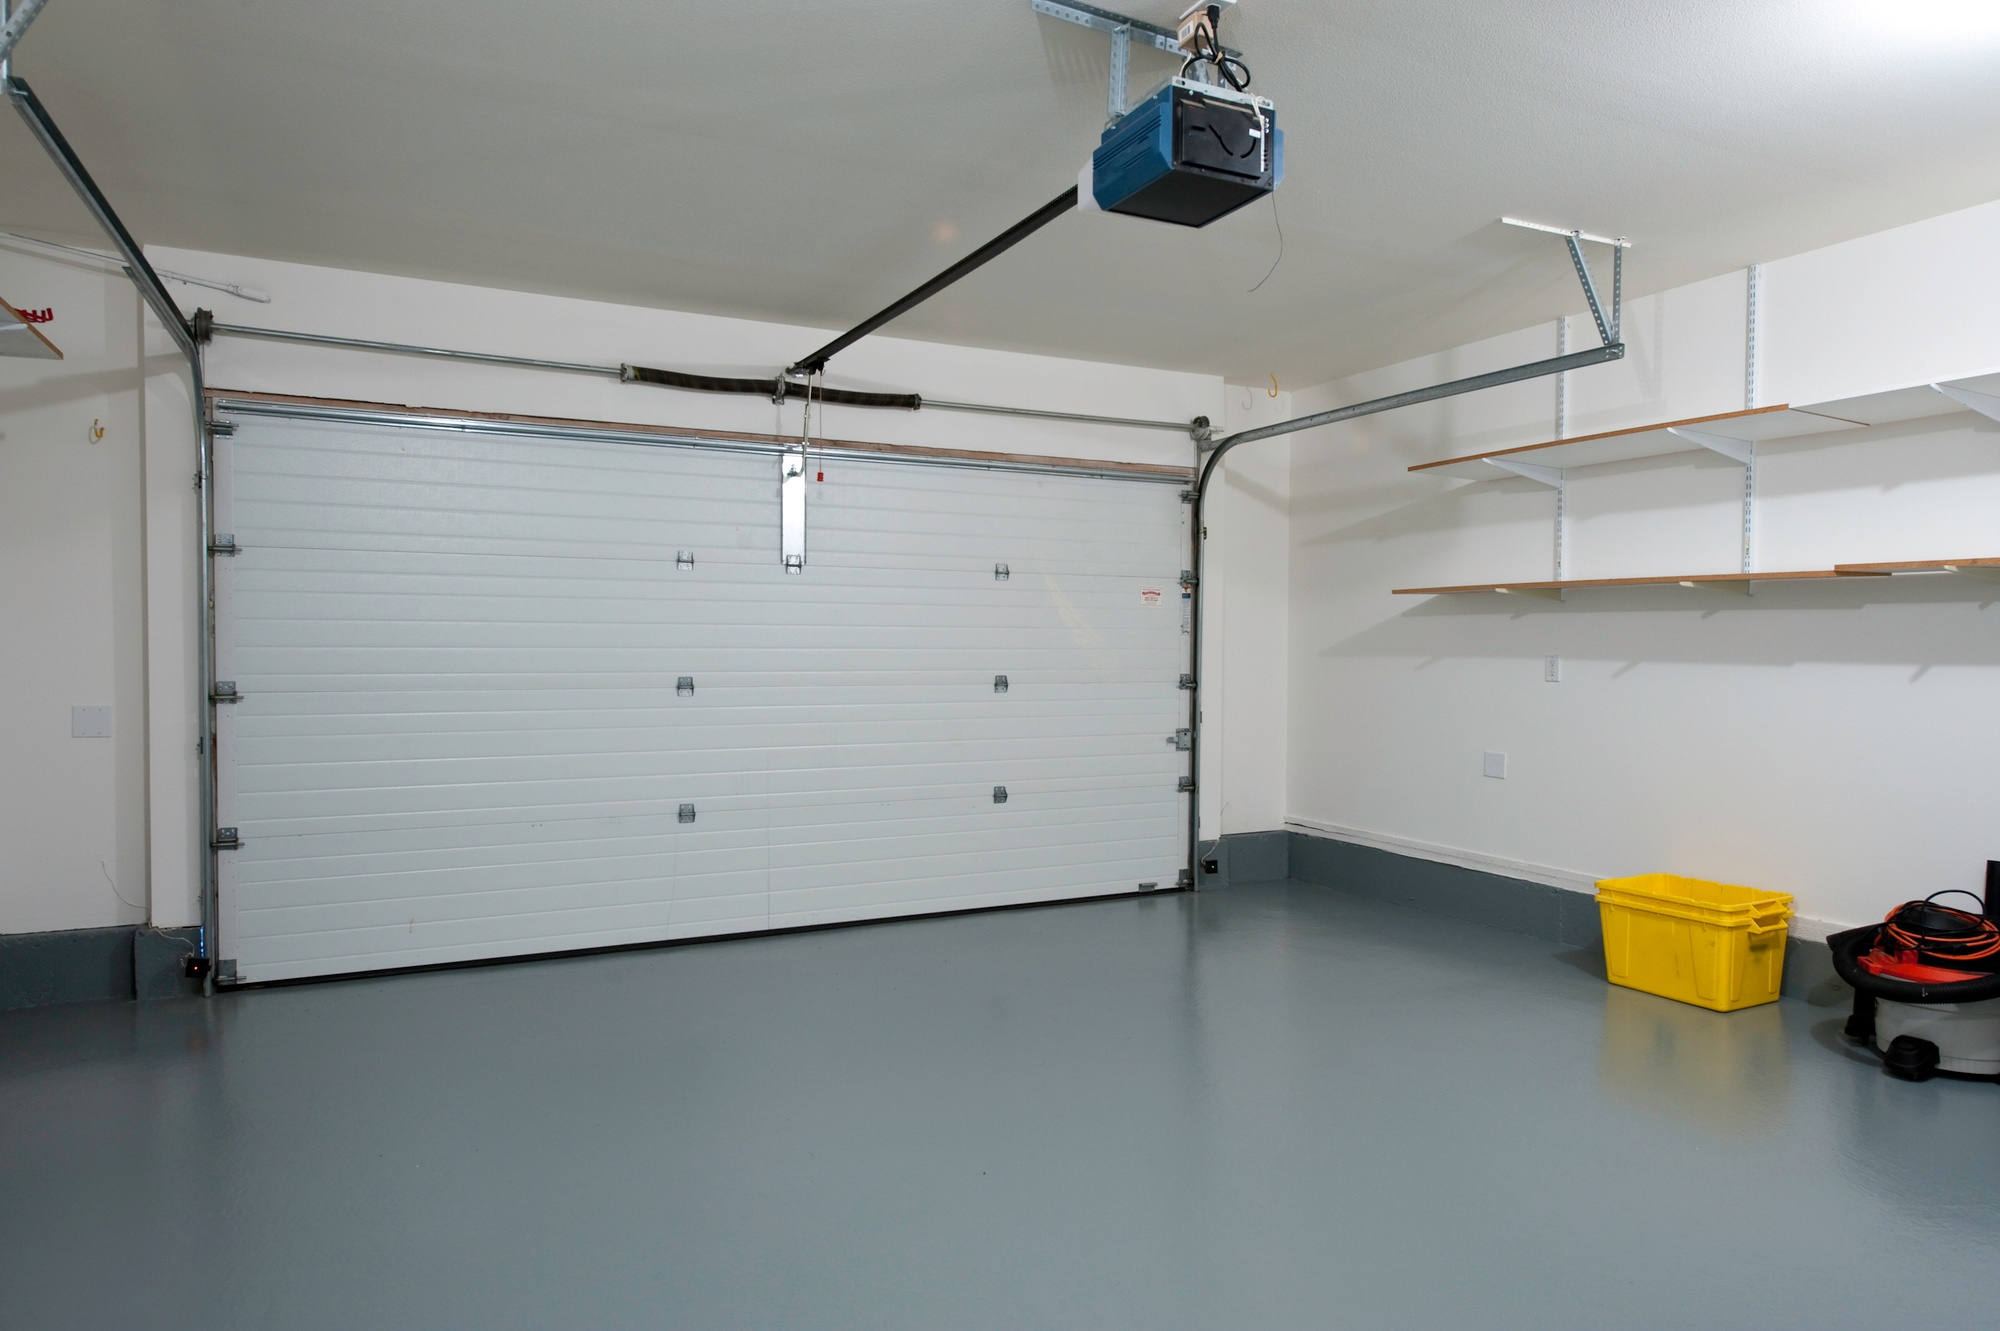 How to manage your garage door during a power outage garage door with power outage rubansaba